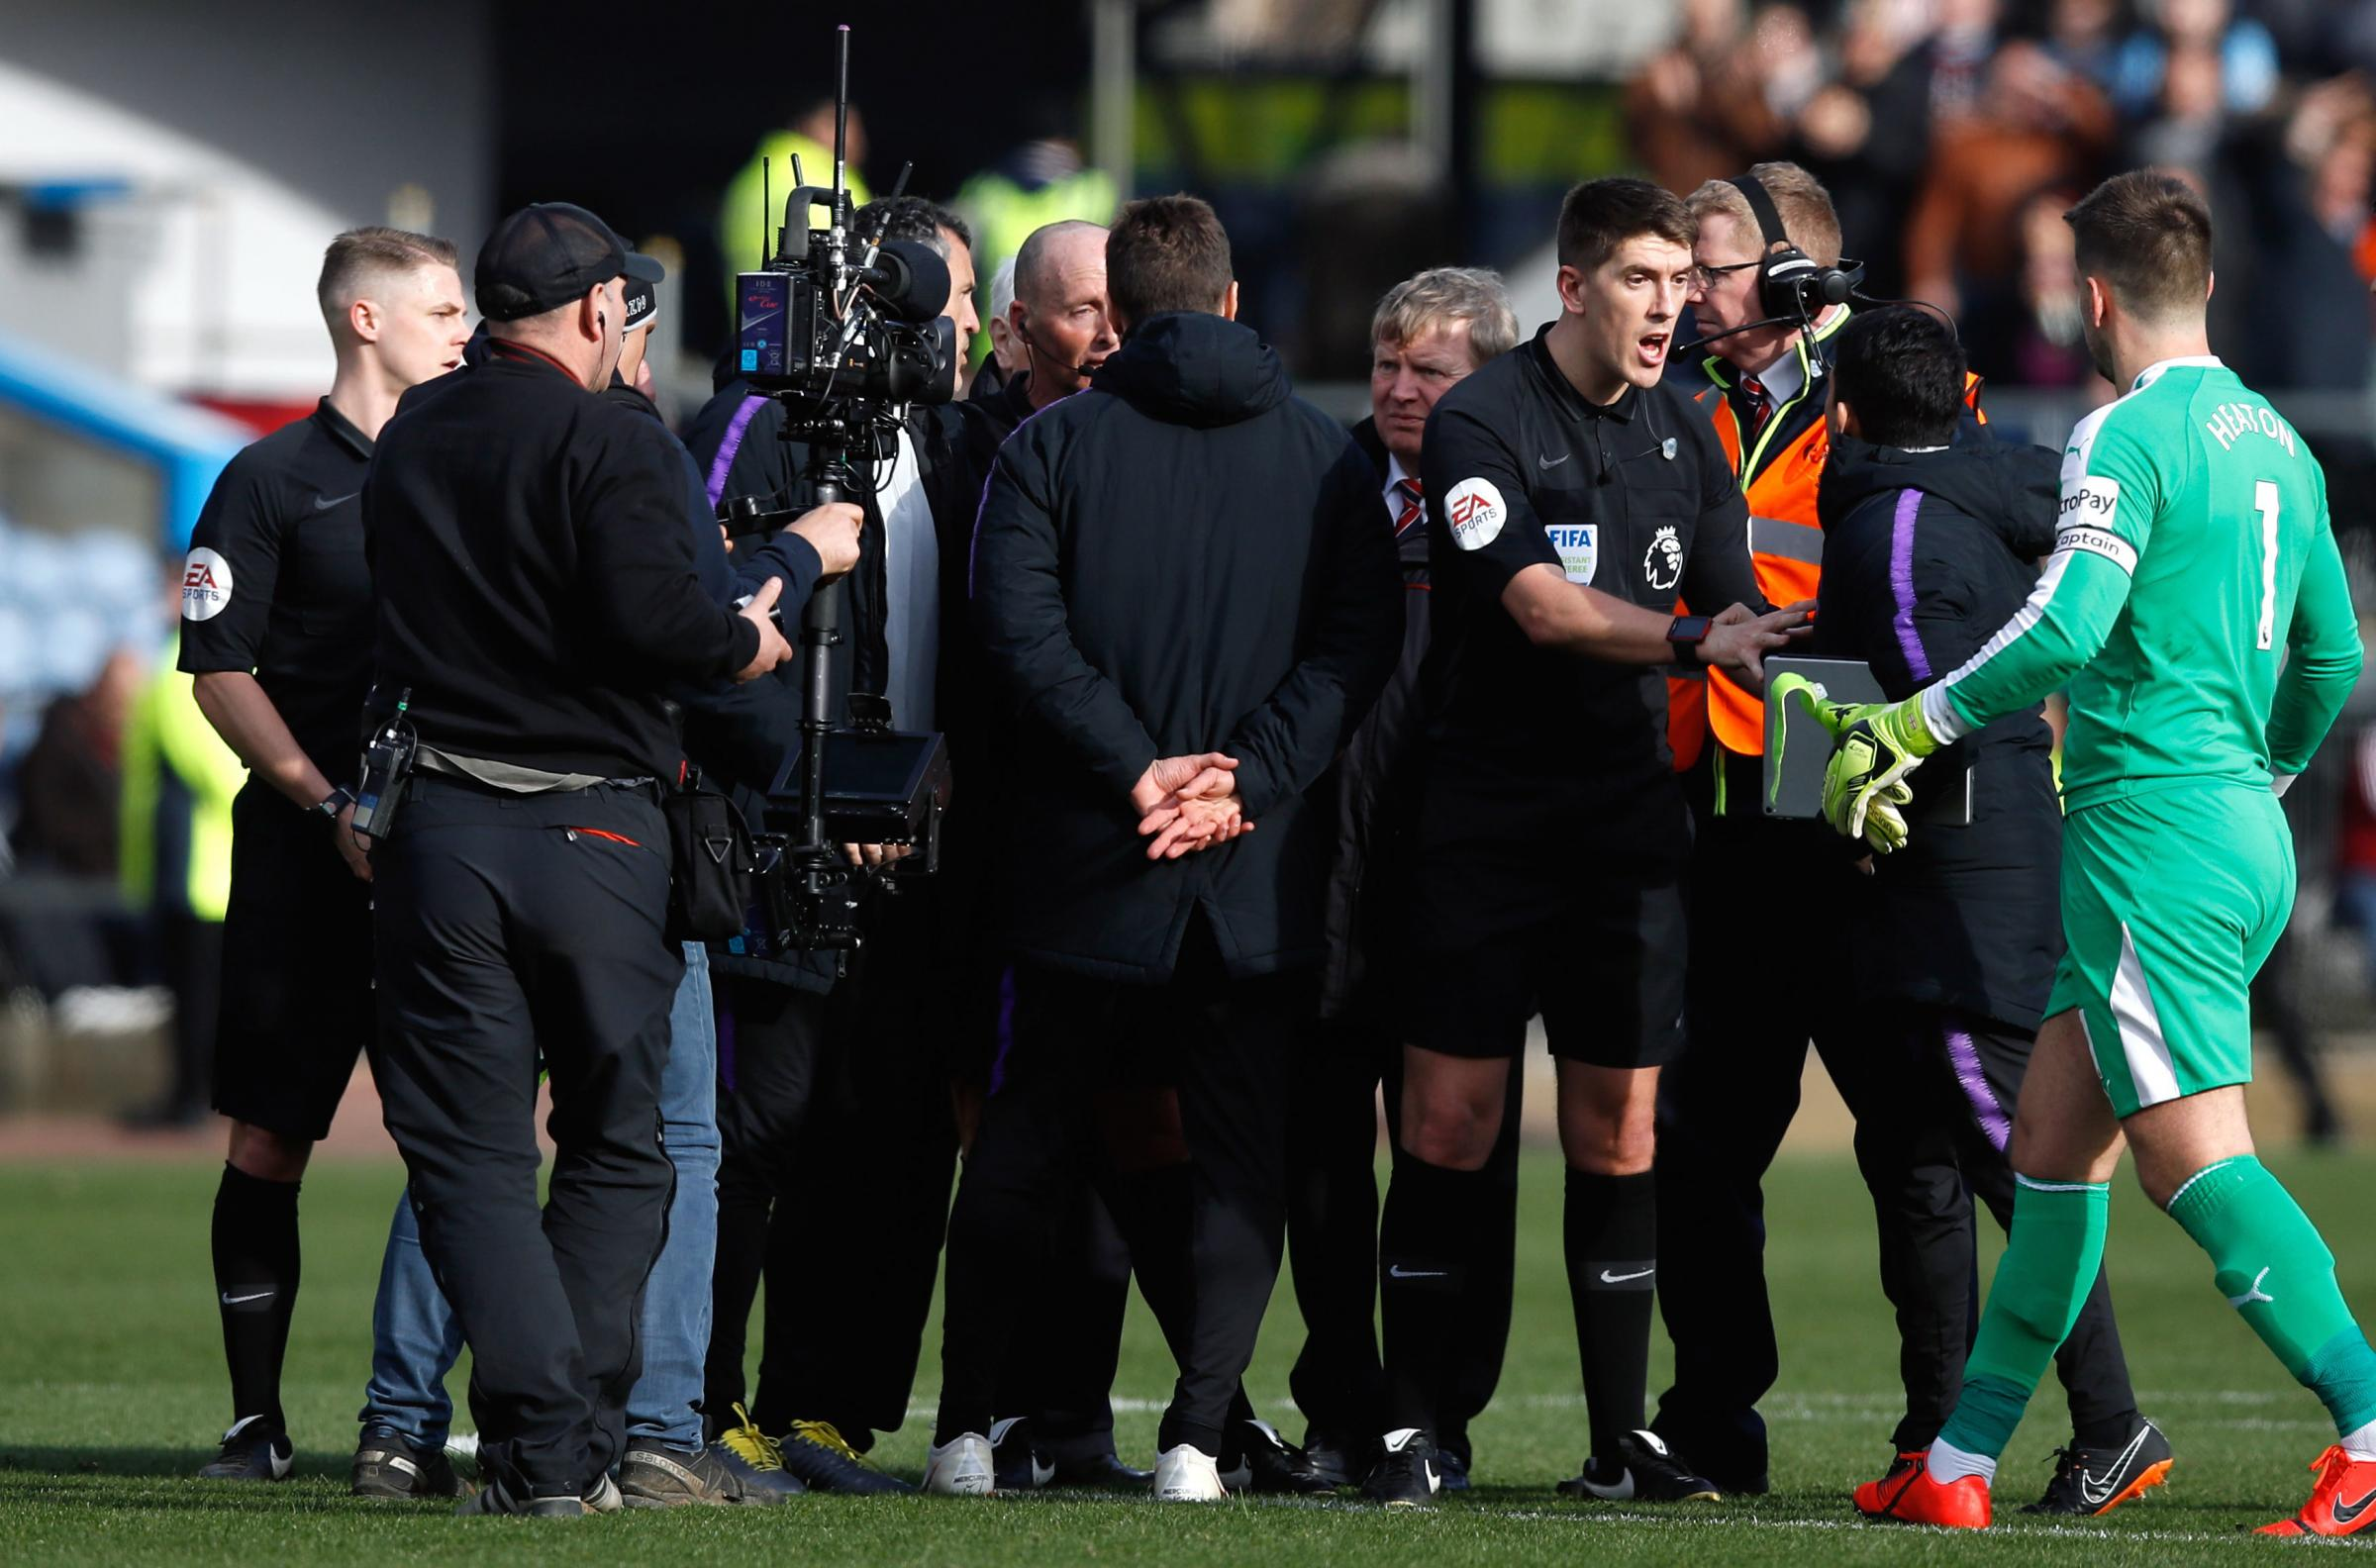 Tottenham Hotspur manager Mauricio Pochettino (centre) and his staff speak to referee Mike Dean and the match officials after their Premier League match at Turf Moor, Burnley. Picture: Martin Rickett/PA Wire